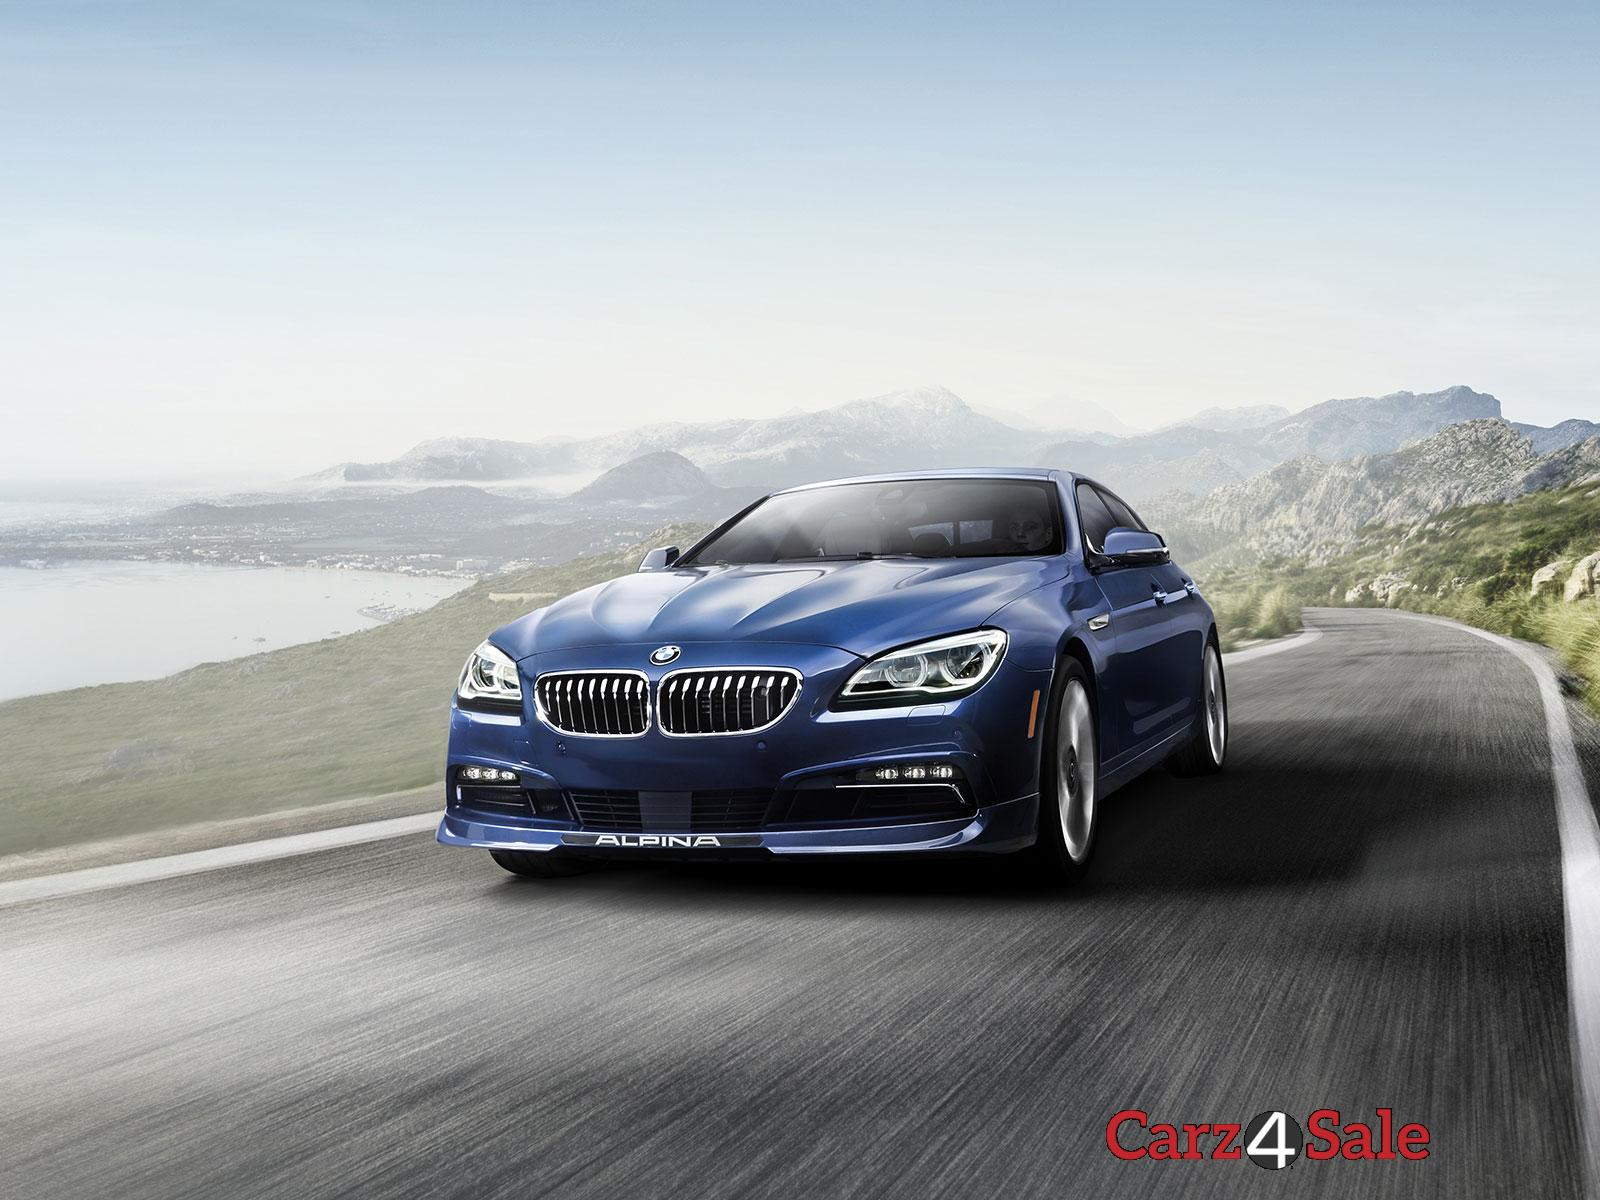 Bmw Alpina B6 Xdrive Gran Coupe Front View